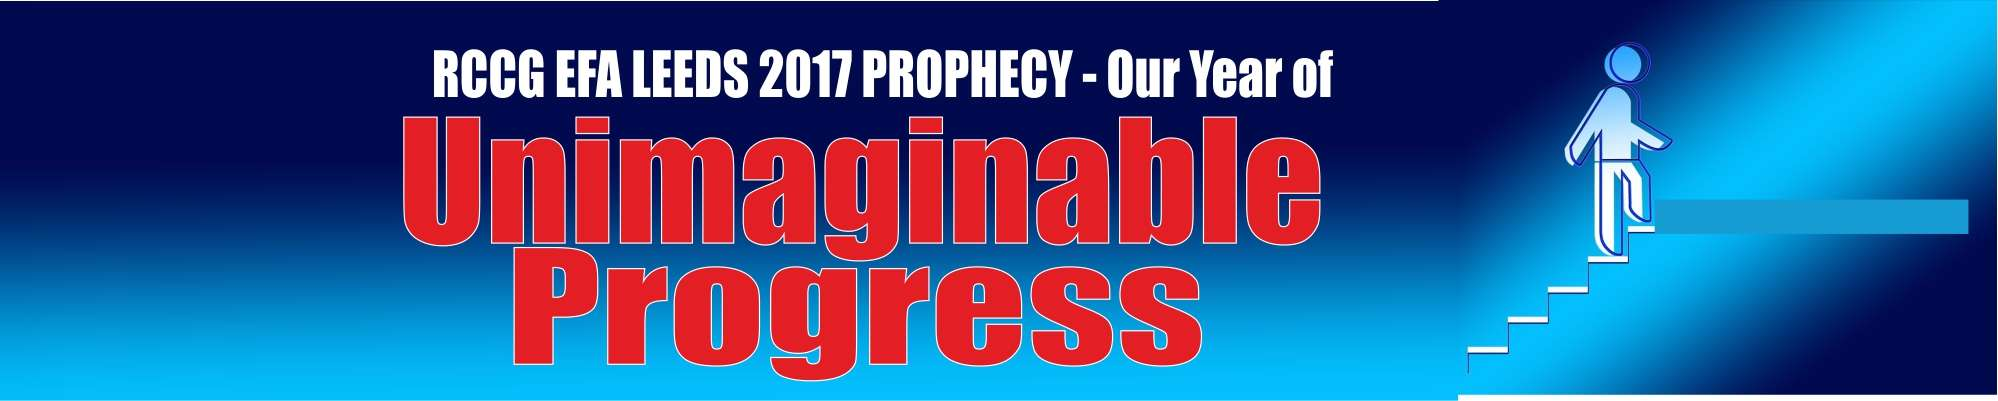 2017 – Our Year of Unimaginable Progress